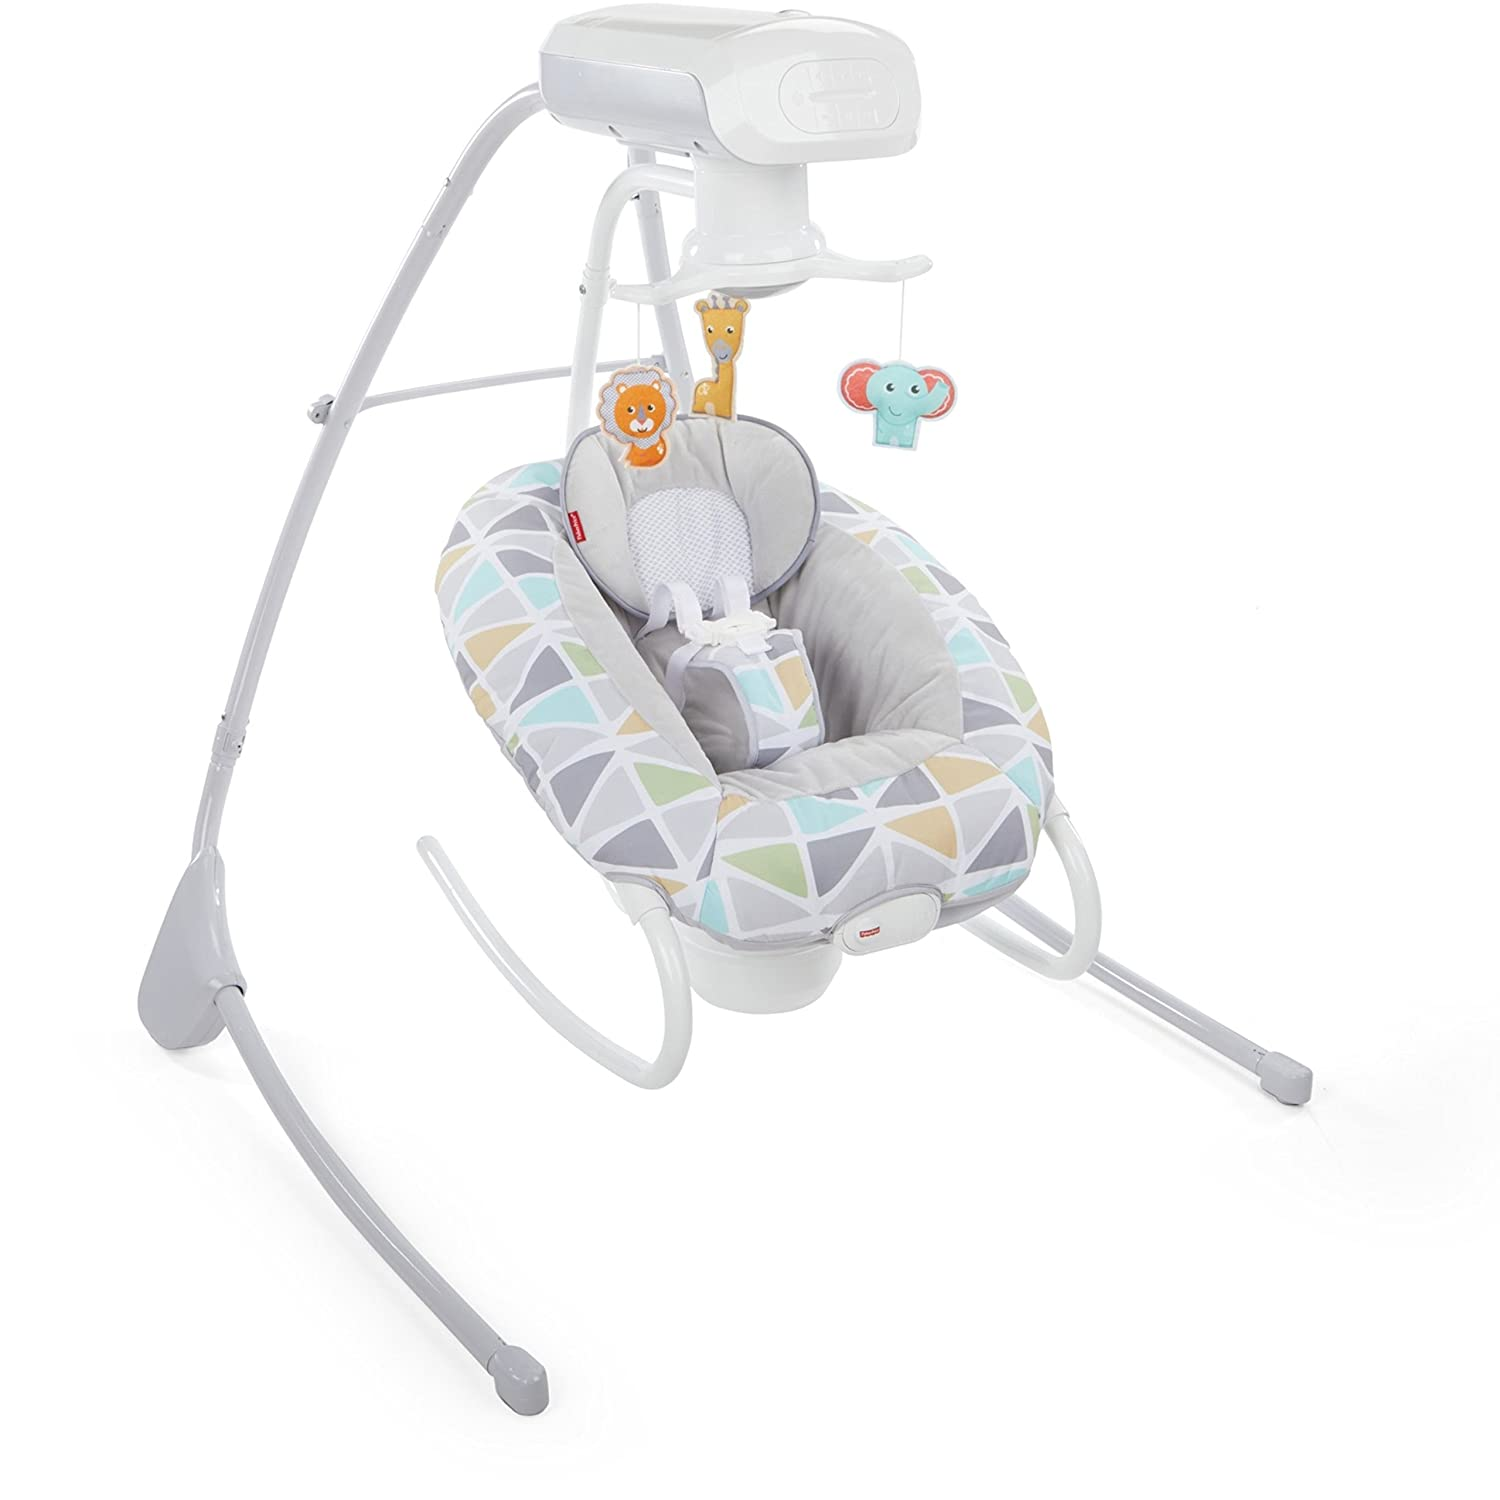 Fisher-Price 2-in-1 Deluxe Cradle 'n Swing, Multi Color FHW45